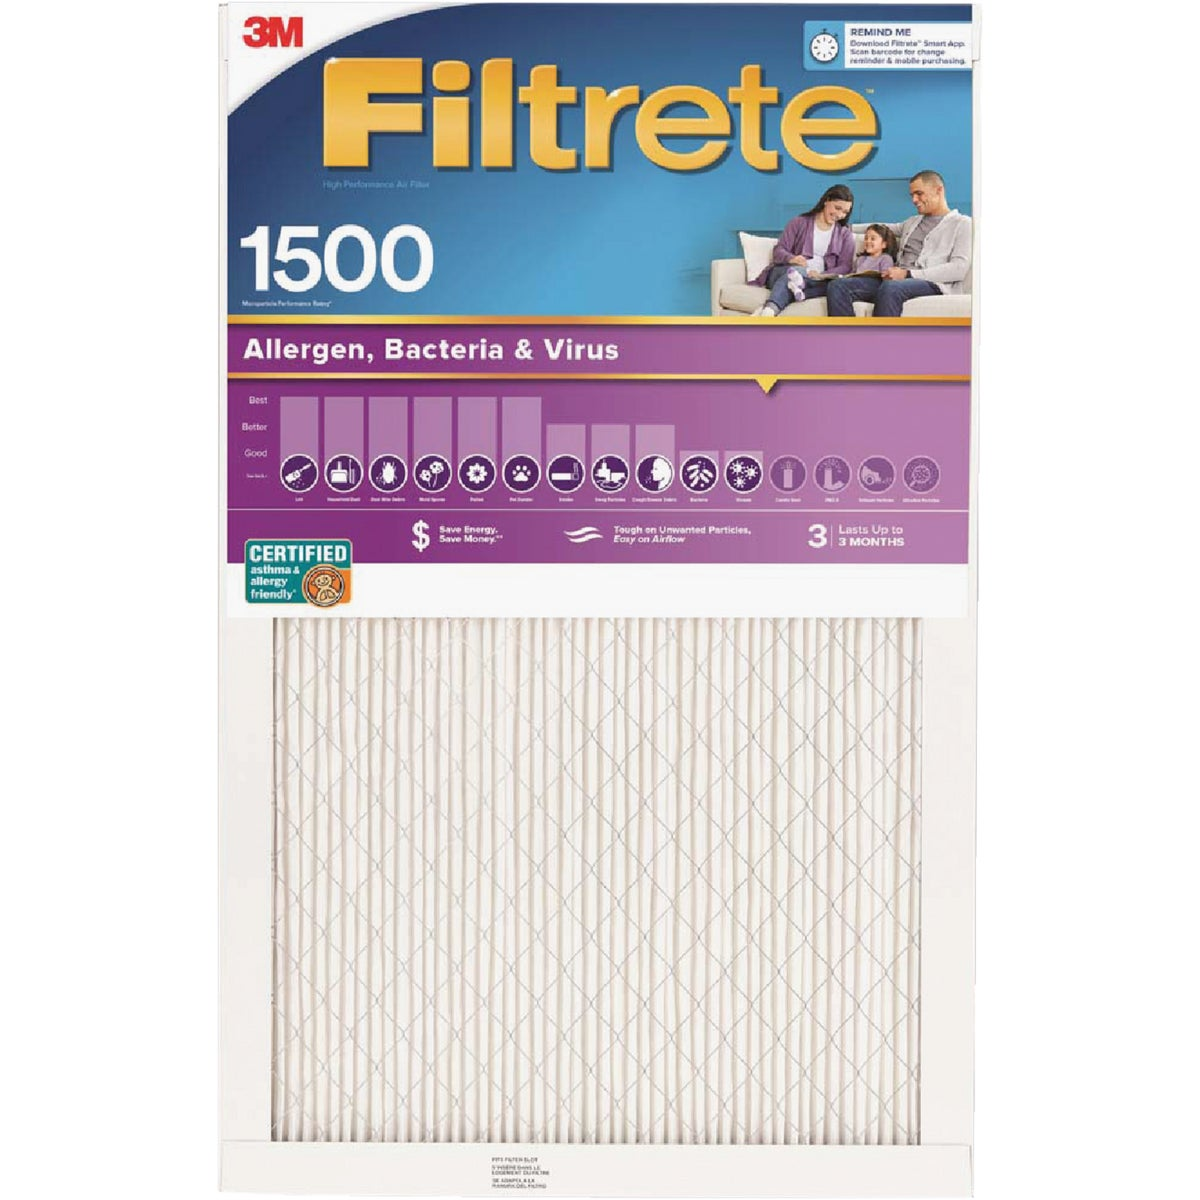 20X30X1 ALLERGEN FILTER - 2022DC-6 by 3m Co